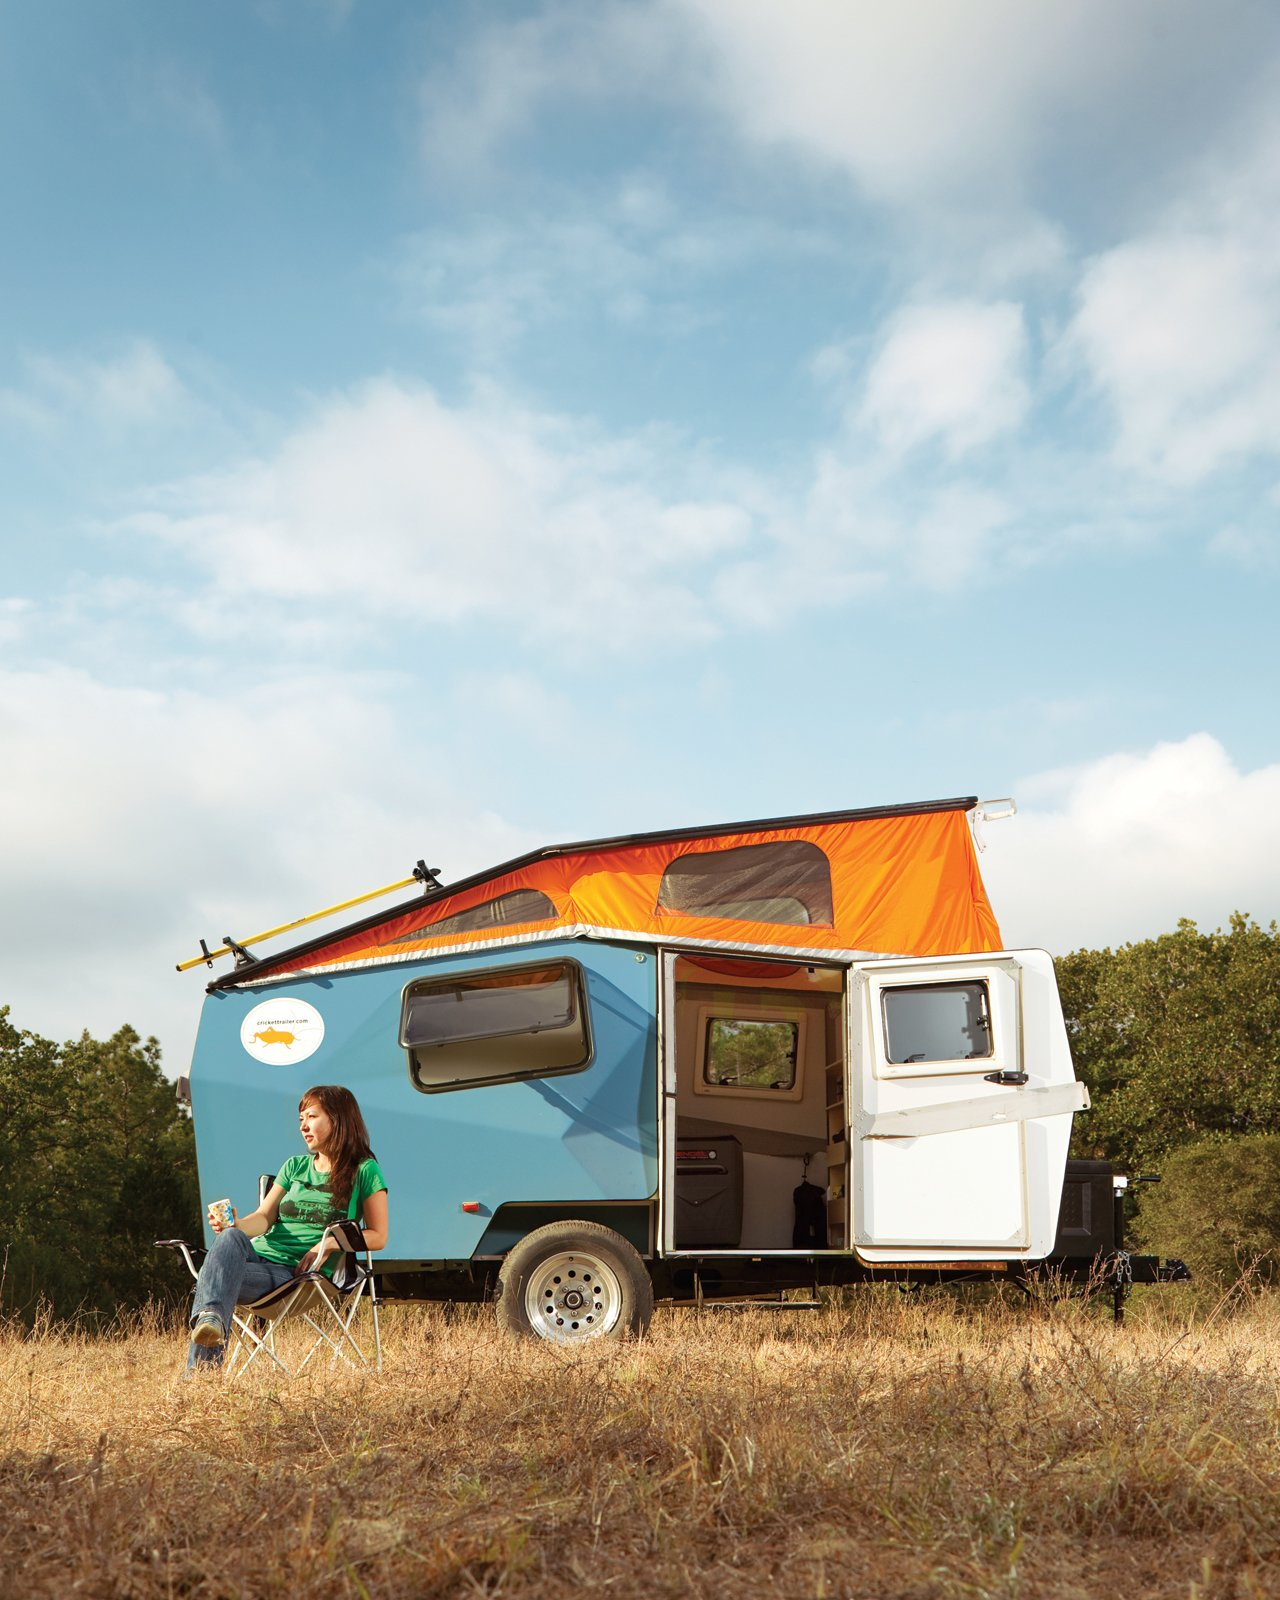 Exterior, Metal Siding Material, Camper Building Type, and Tent Building Type Part tent, part RV, the NASA-inspired Cricket Trailer is the go-to camper for the modern road tripper.  Photos from 10 Tiny Trailers to Take on an Adventure